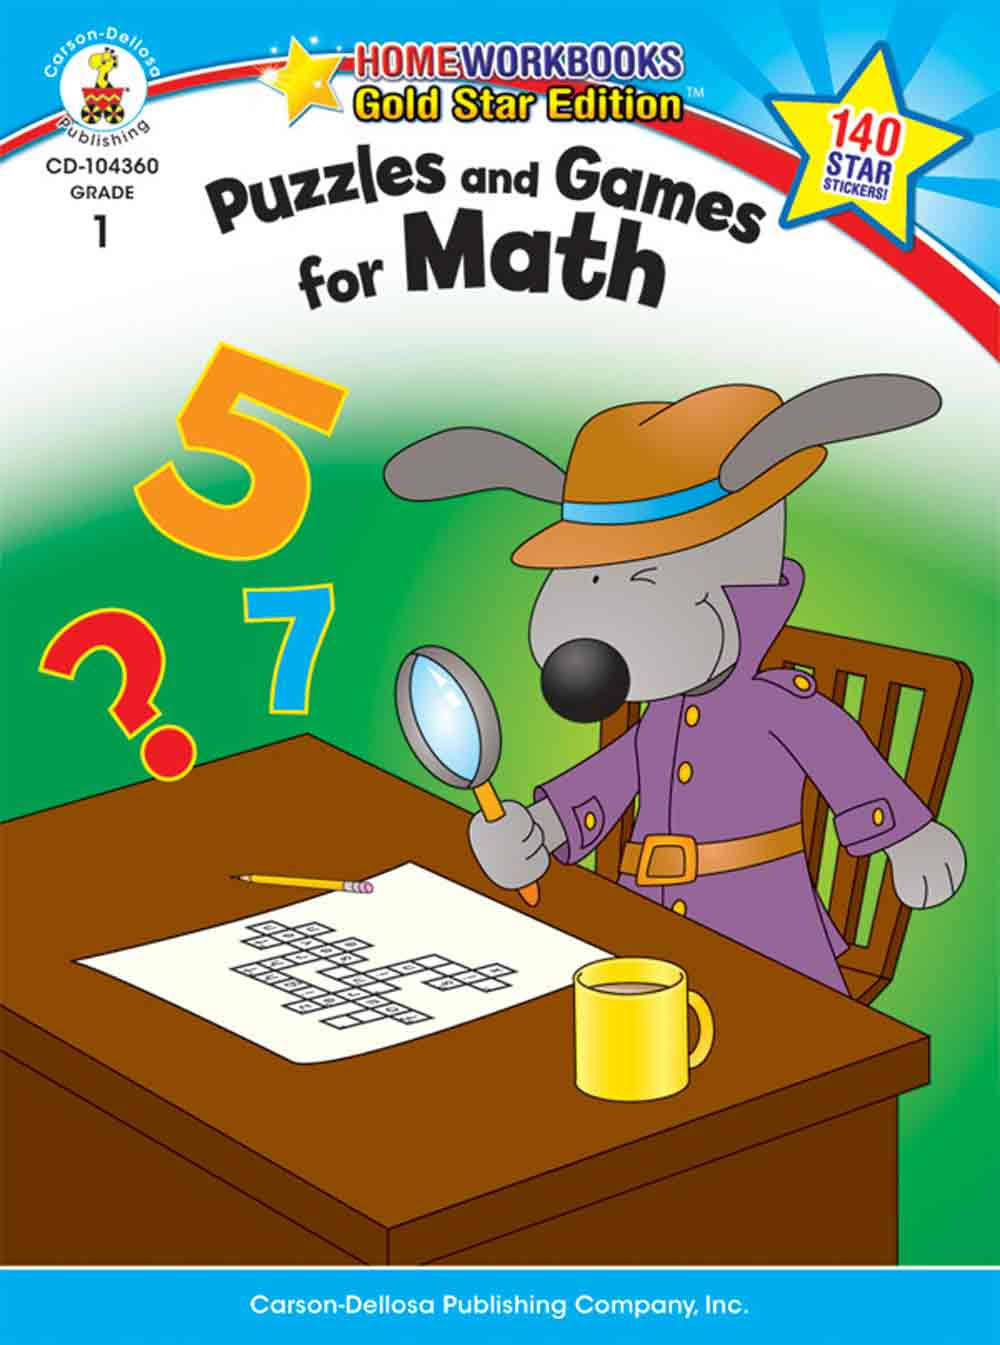 Puzzles and Games for Math Grade 1: Gold Star Edition - Carson-Dellosa Publishing